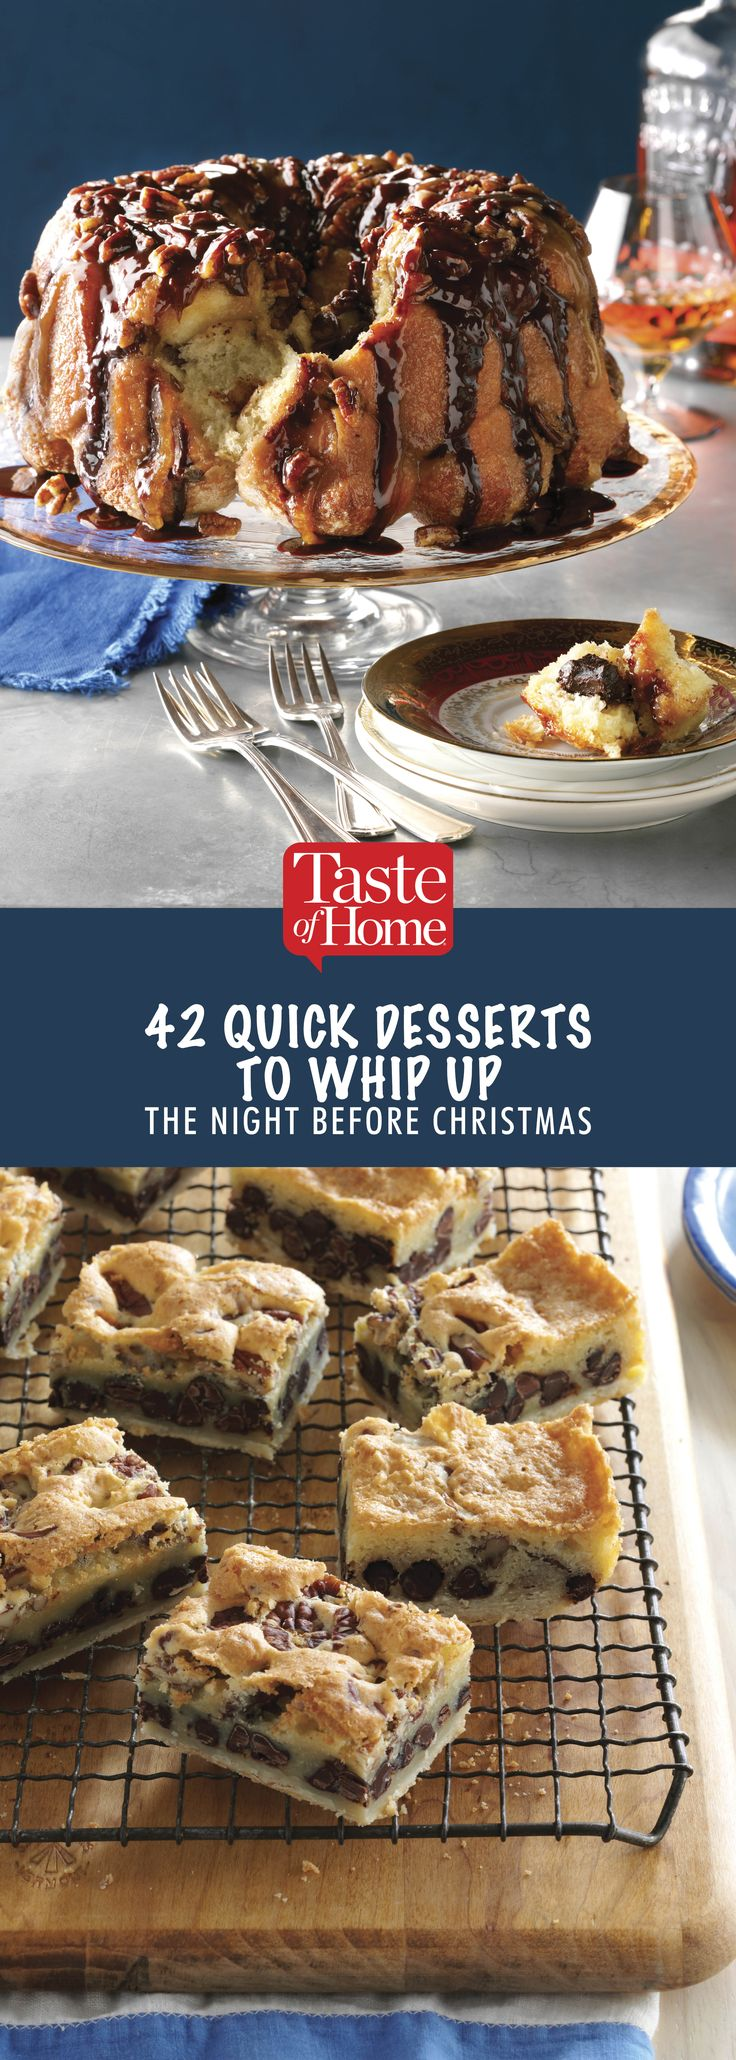 42 Quick Desserts to Whip Up the Night Before Christmas